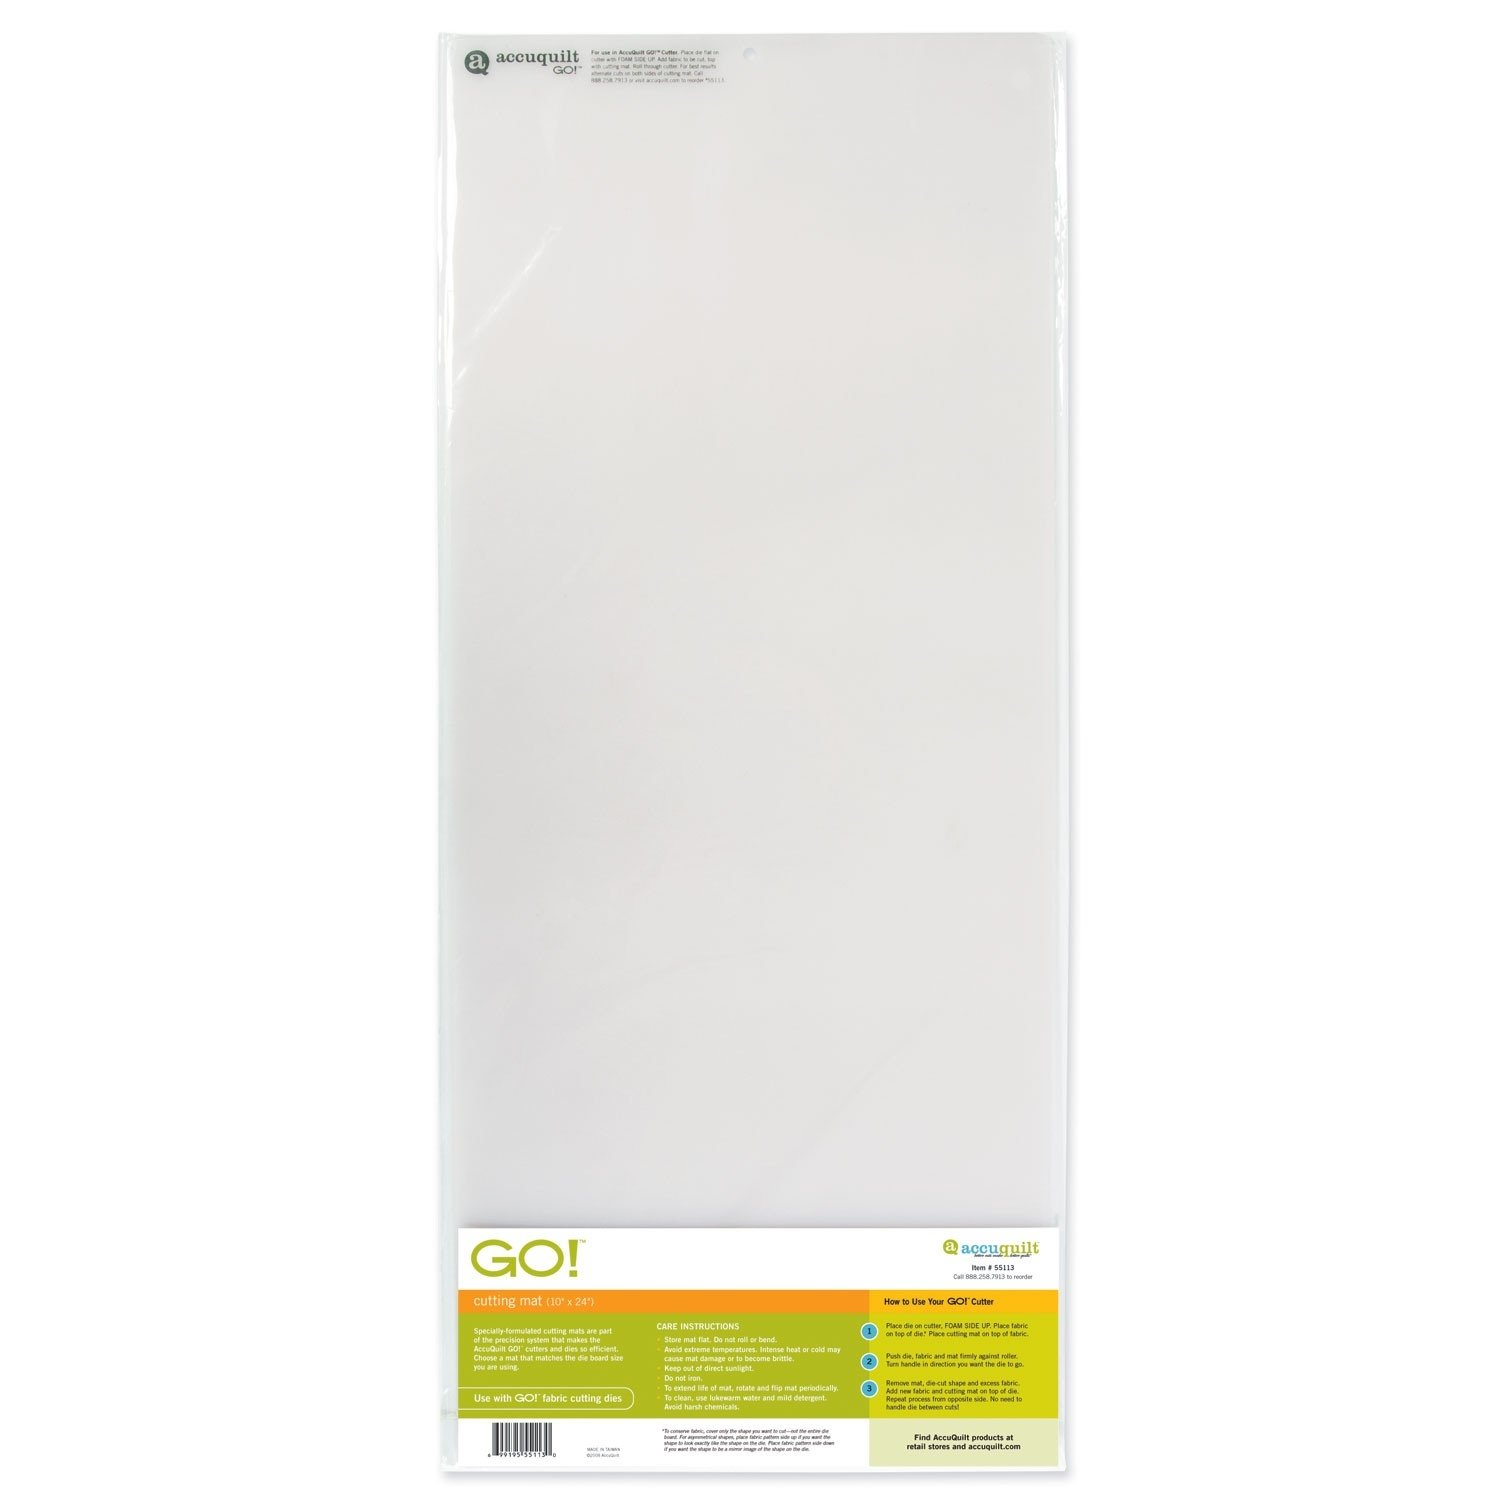 AccuQuilt Go Cutting Mat, 10-Inch-by-10-Inch 55111